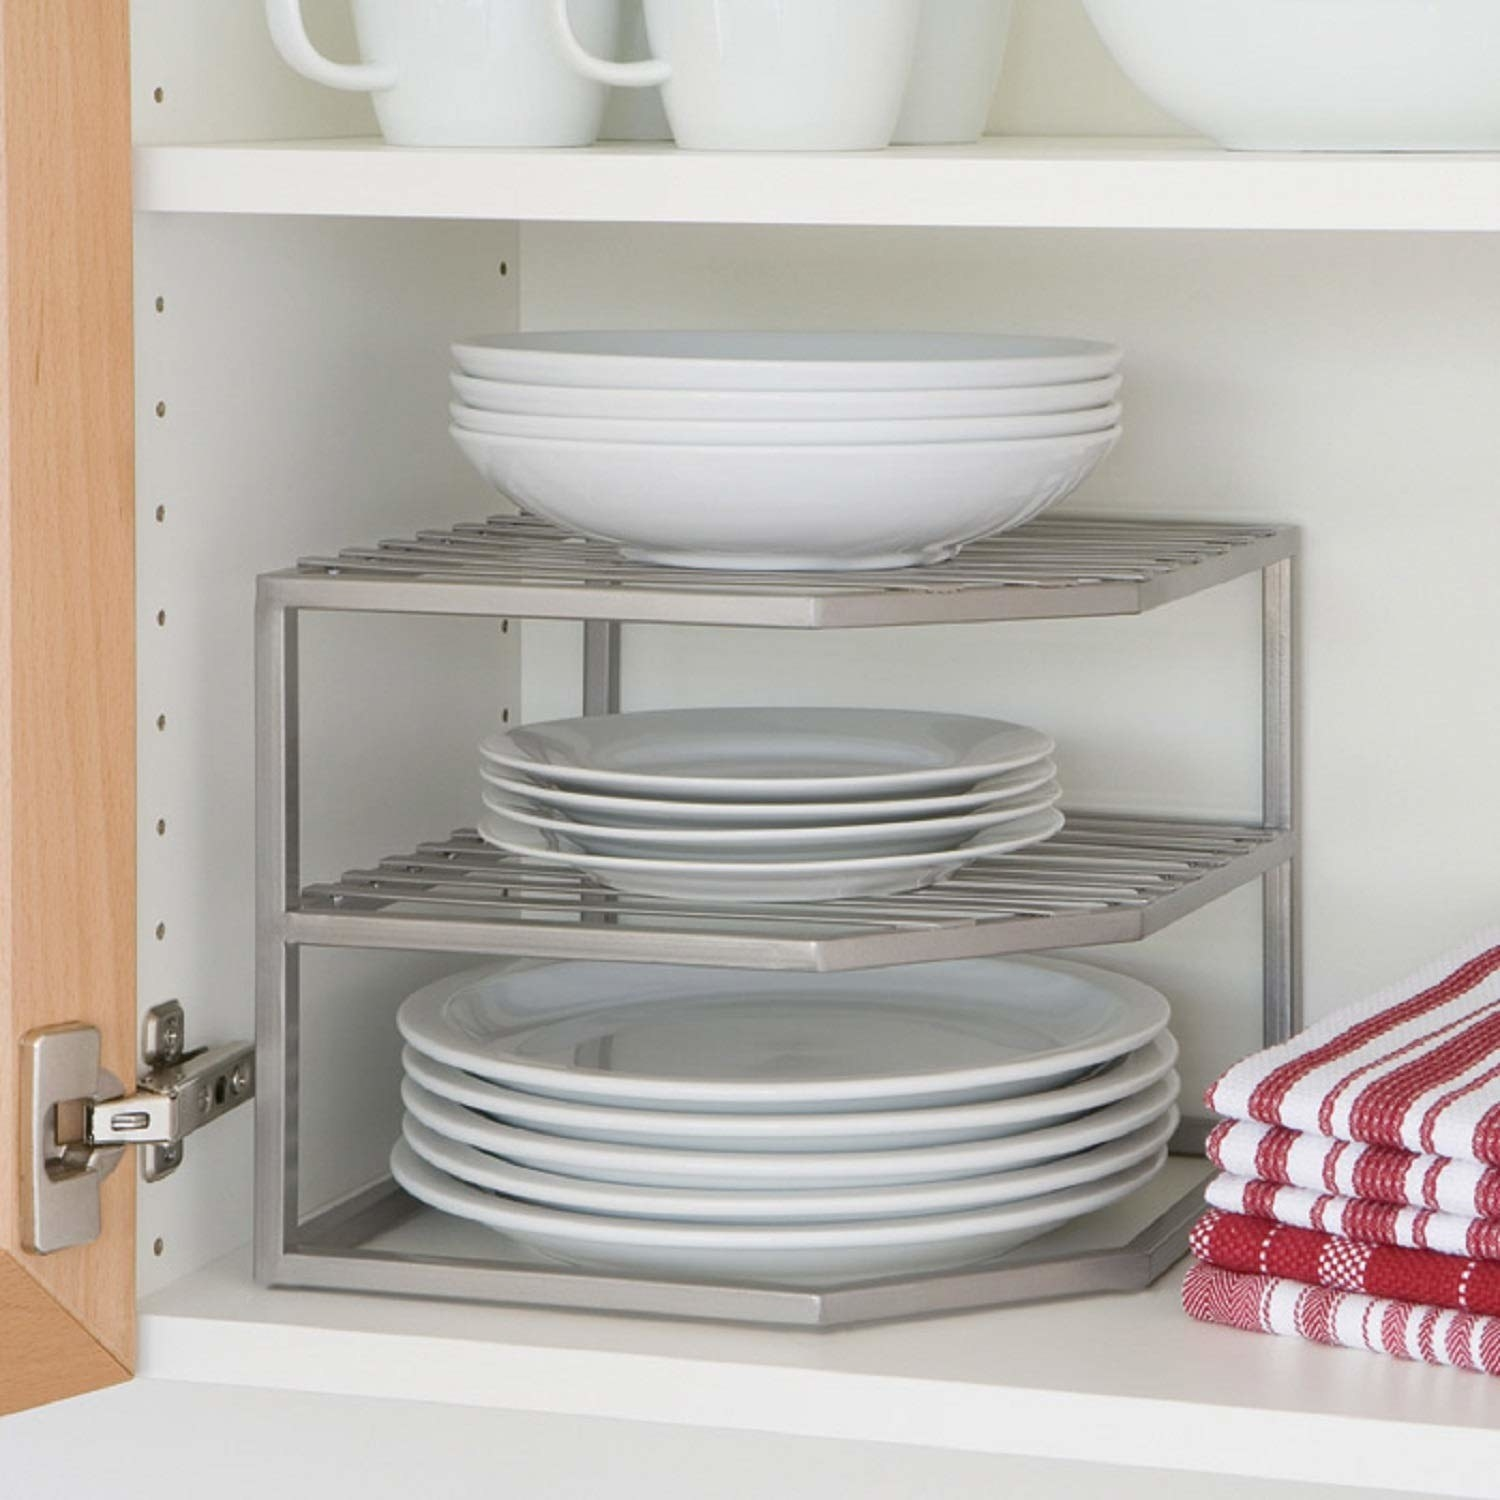 inside a kitchen cabinet with a corner view of the three-tier dish organizer holding heavy looking dinner plates, salad plates, and bowls